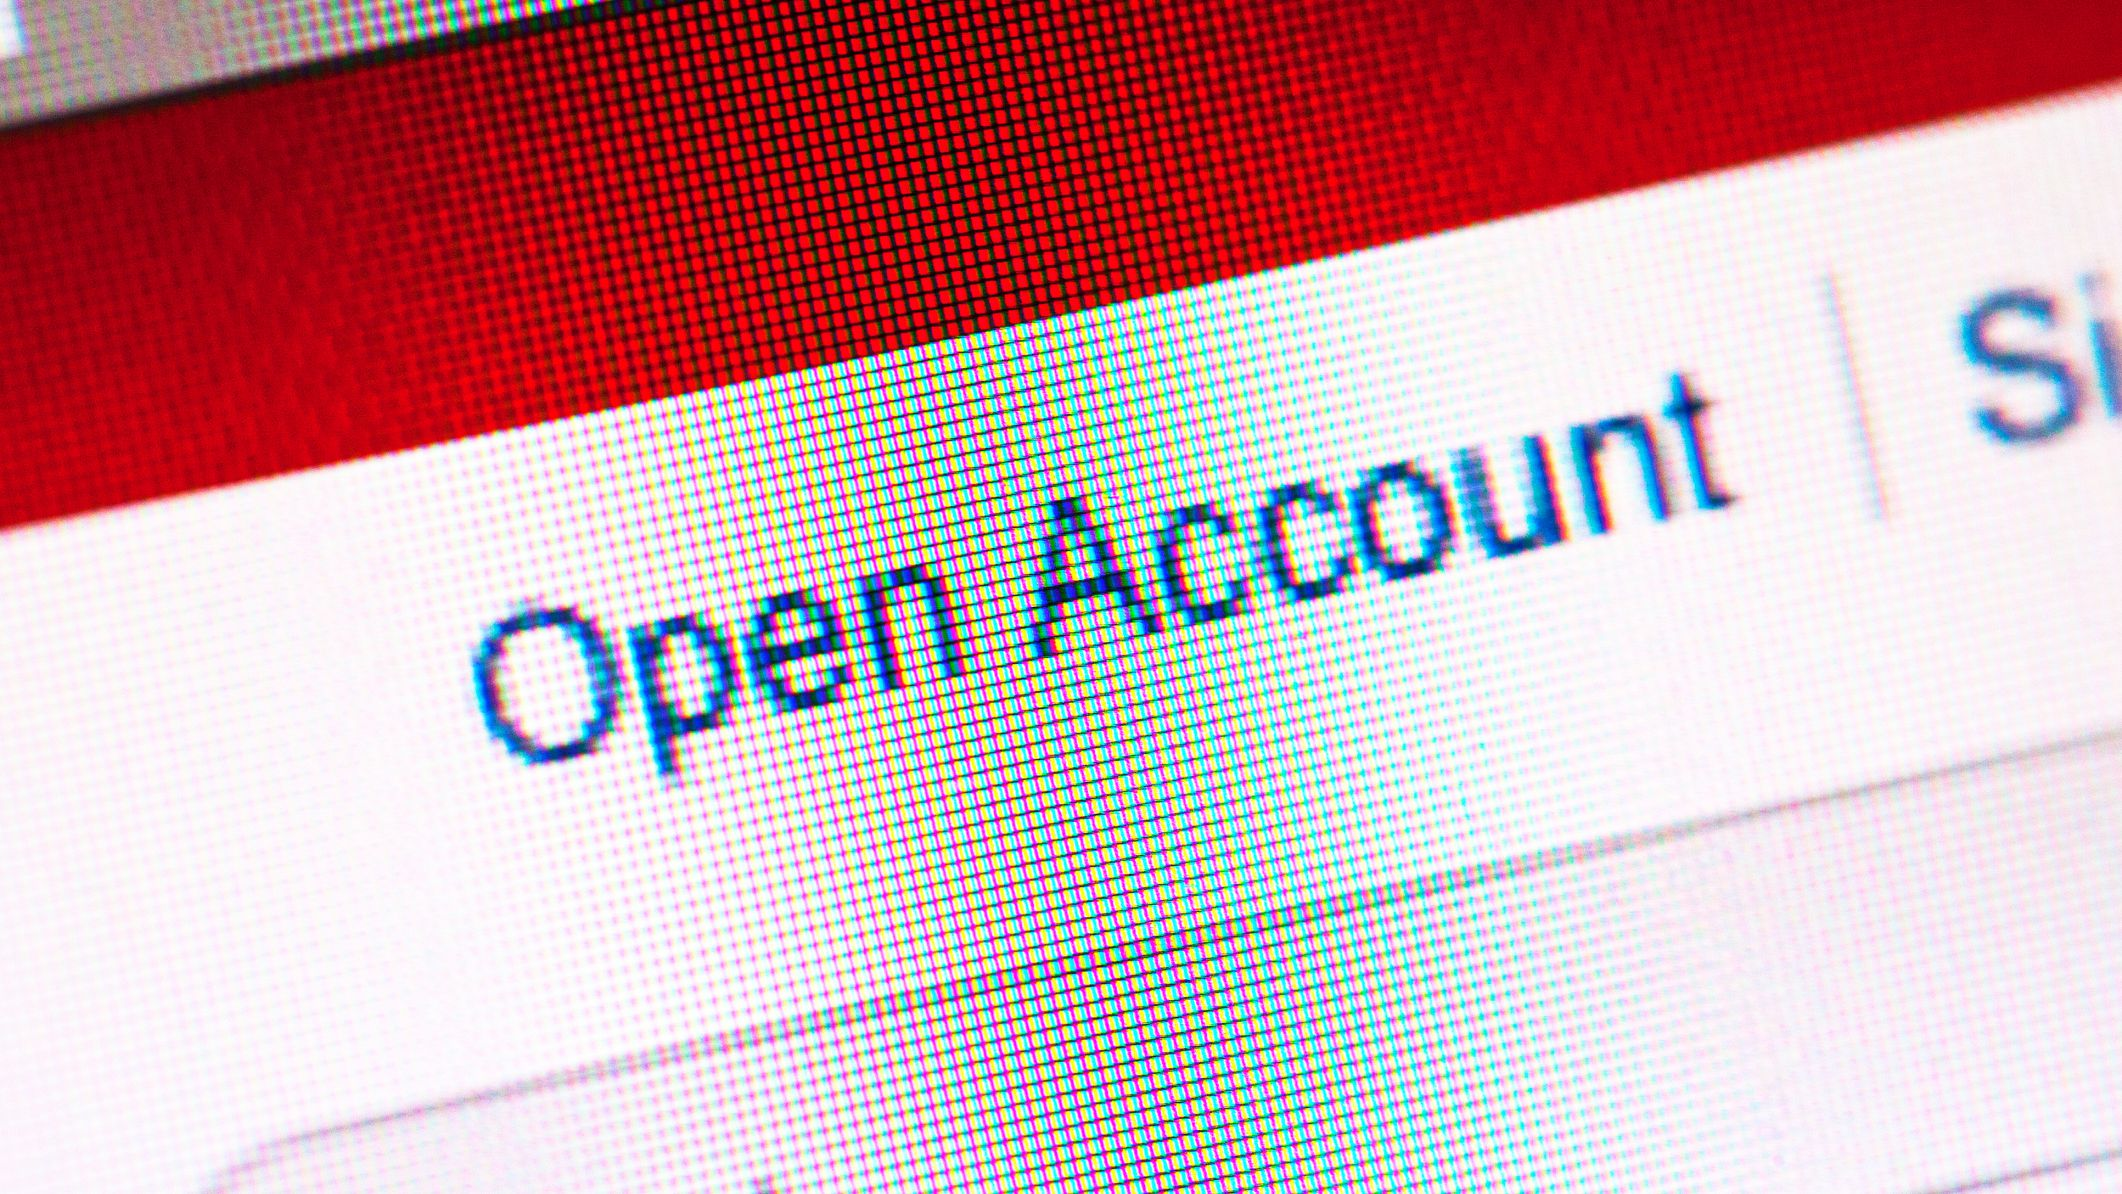 Are You Considering Opening an Online Bank Account? These 4 Tips Would Help You Make a Better Decision